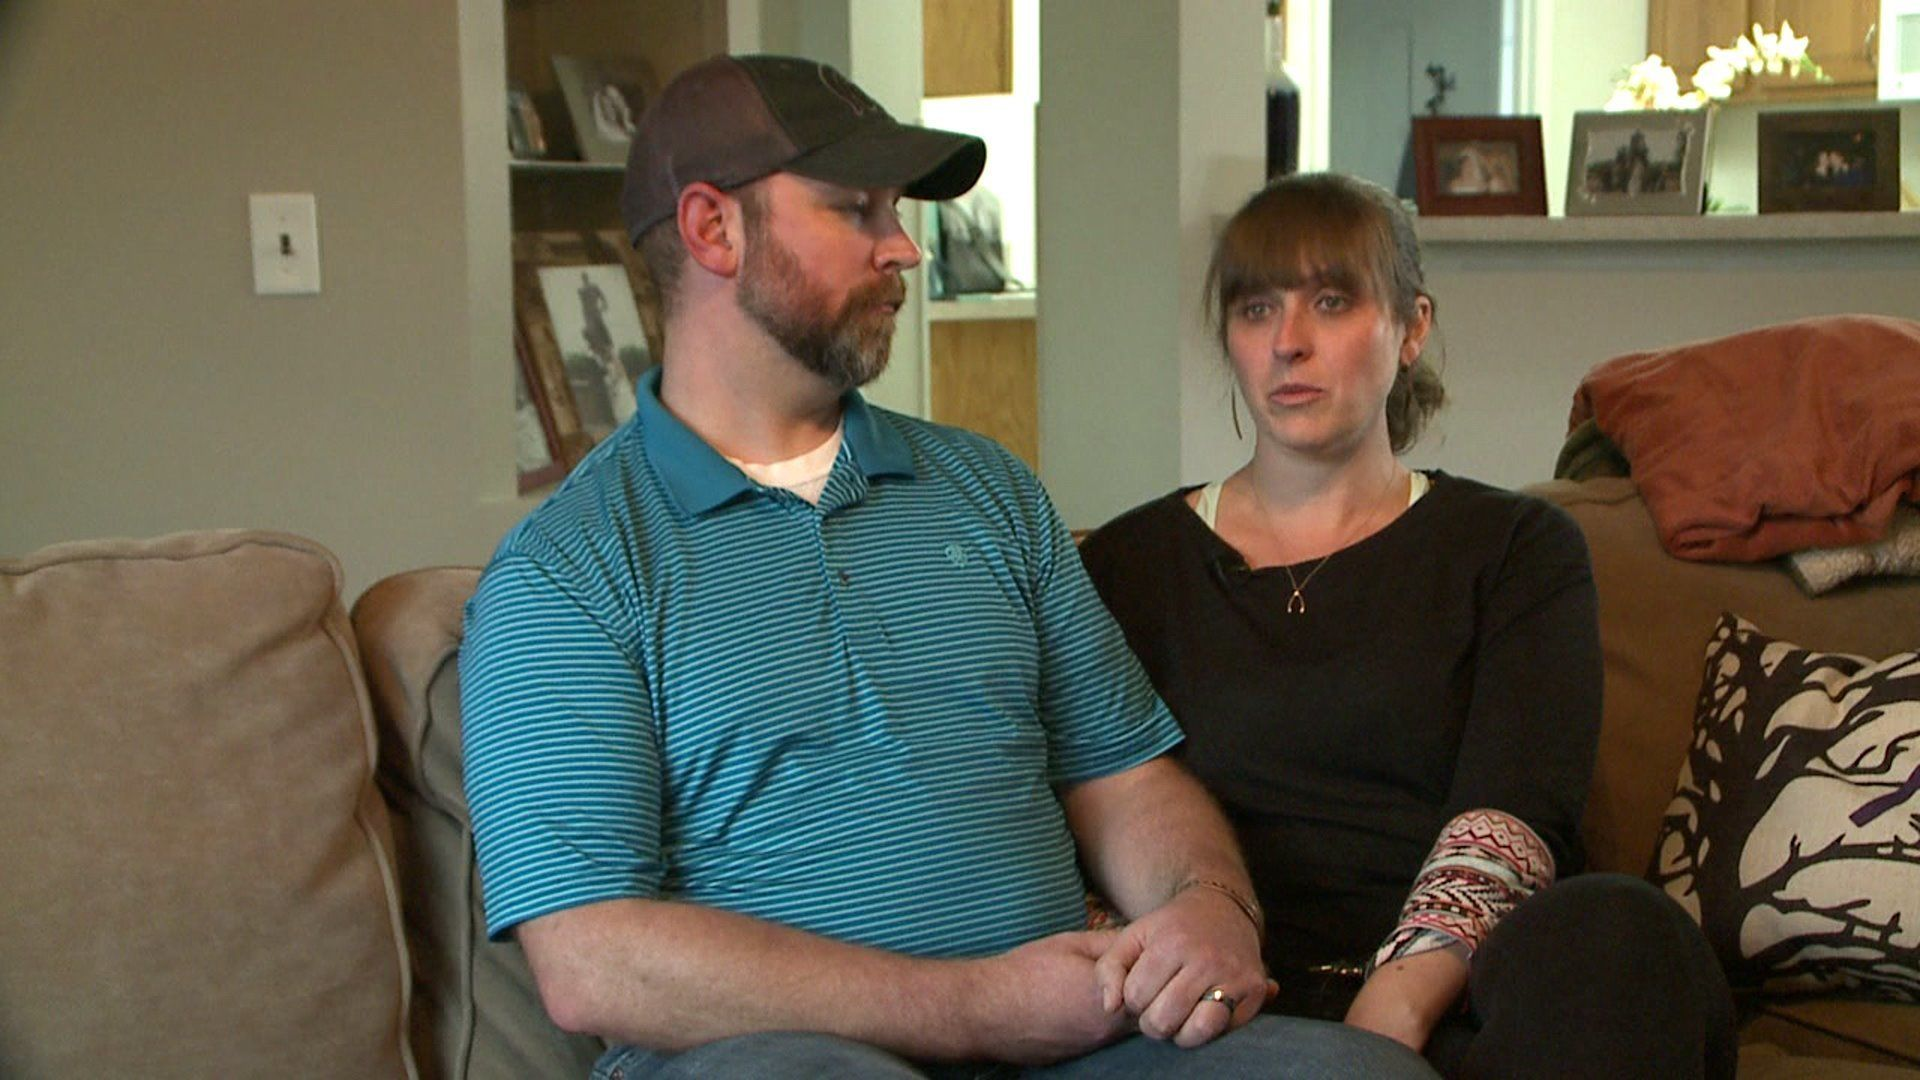 MI  pharmacist denies woman miscarriage medication over religious beliefs